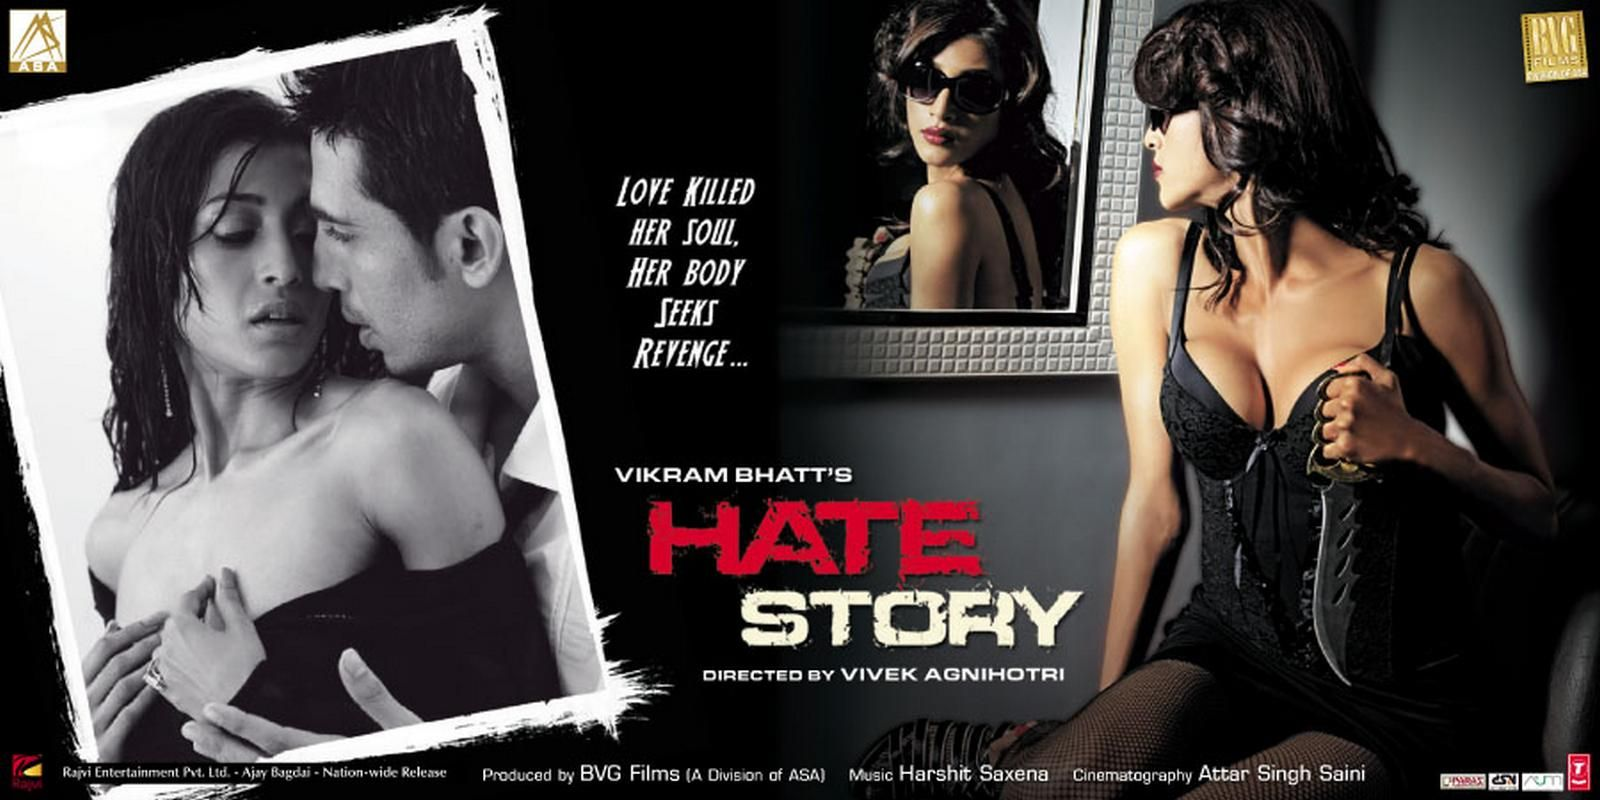 Hate Story 2 Pic Of Actress: MY COUNTRY ACTRESS: Hate Story Movie Wallpapers